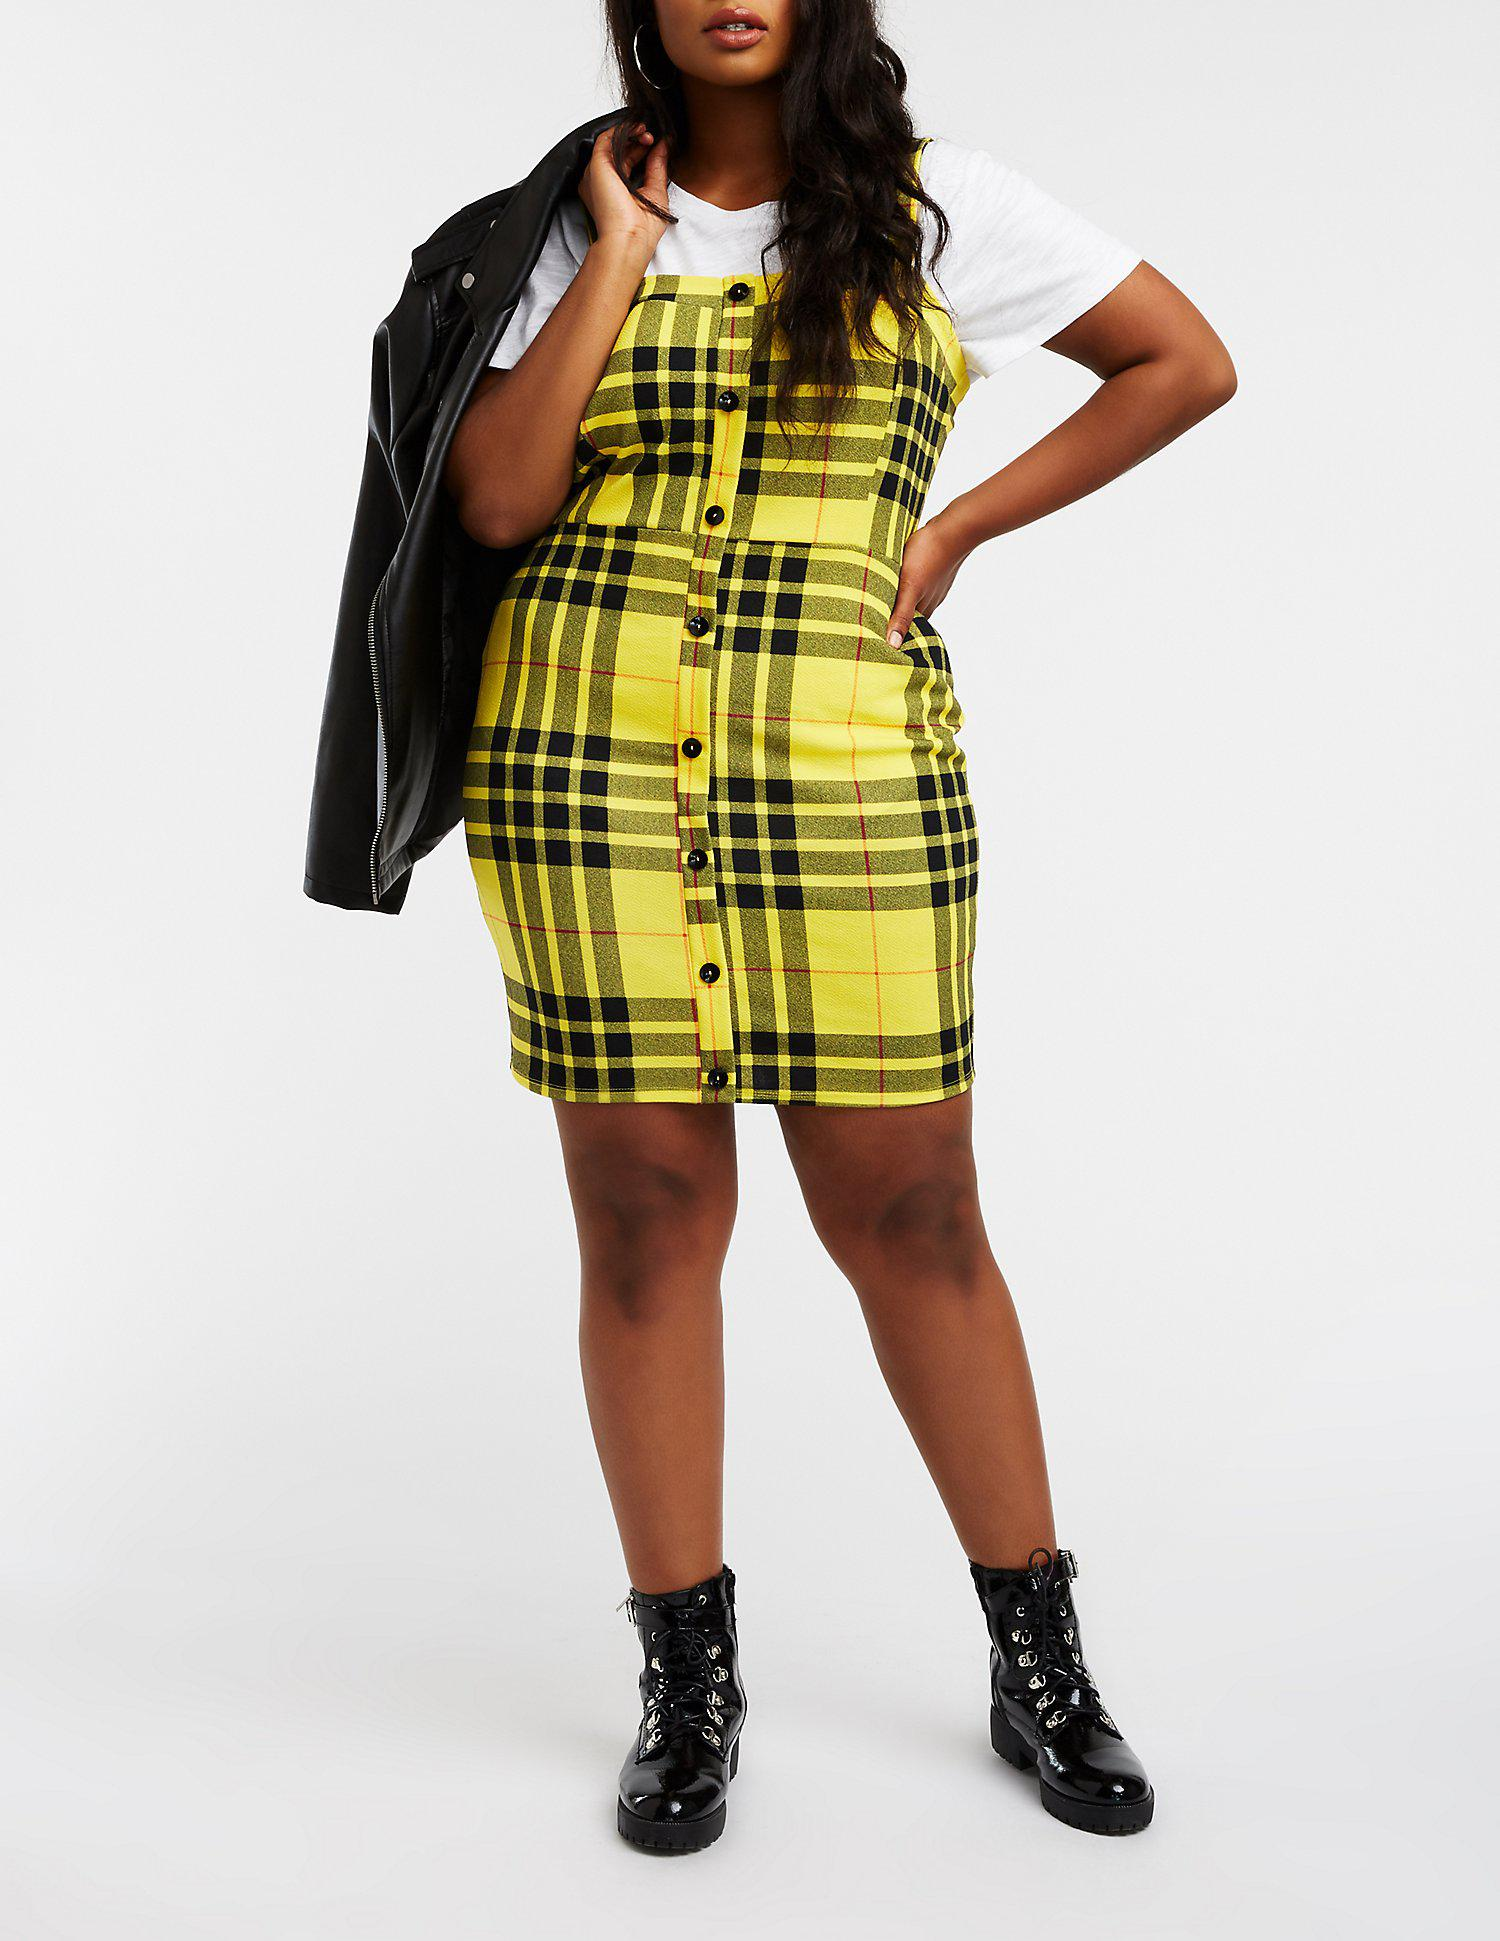 Lyst - Charlotte Russe Plus Size Plaid Button Up Dress in ...